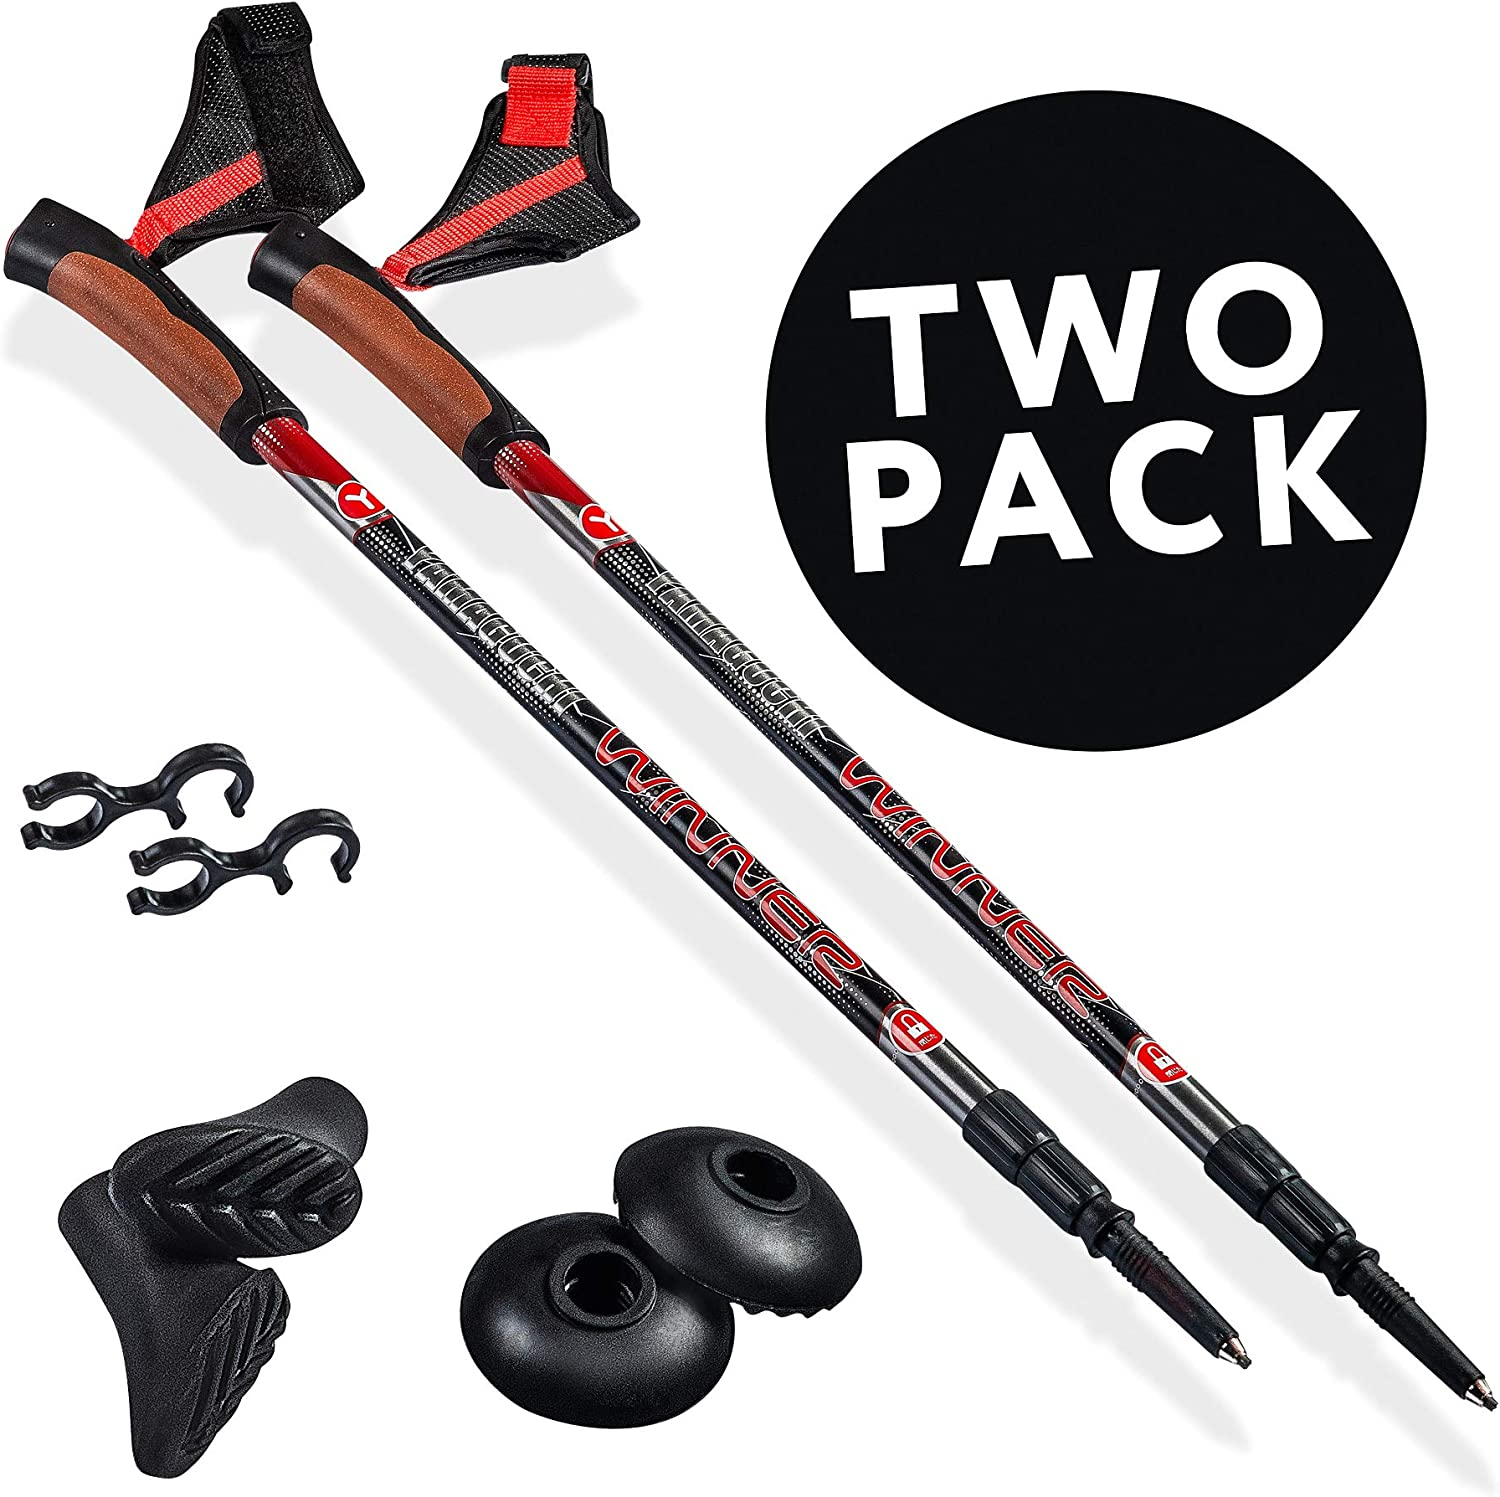 Walking Stick Hiking Poles Trekking Poles Trekking Poles Collapsible Lightweight Telescoping Pole 4 Seasons All Terrain Tips Twist Lock Walking Sticks For Women 2 Pack